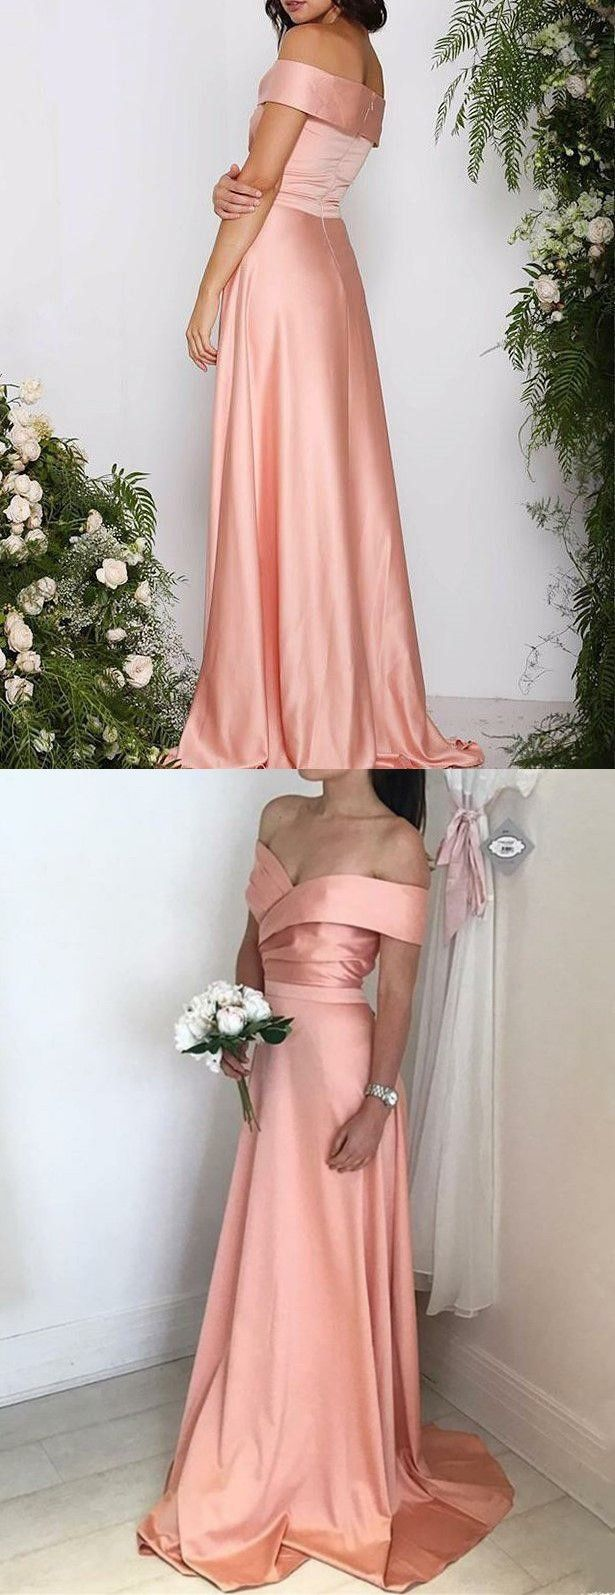 ALine Off the Shoulder Coral Stretch Satin Bridesmaid Dress in